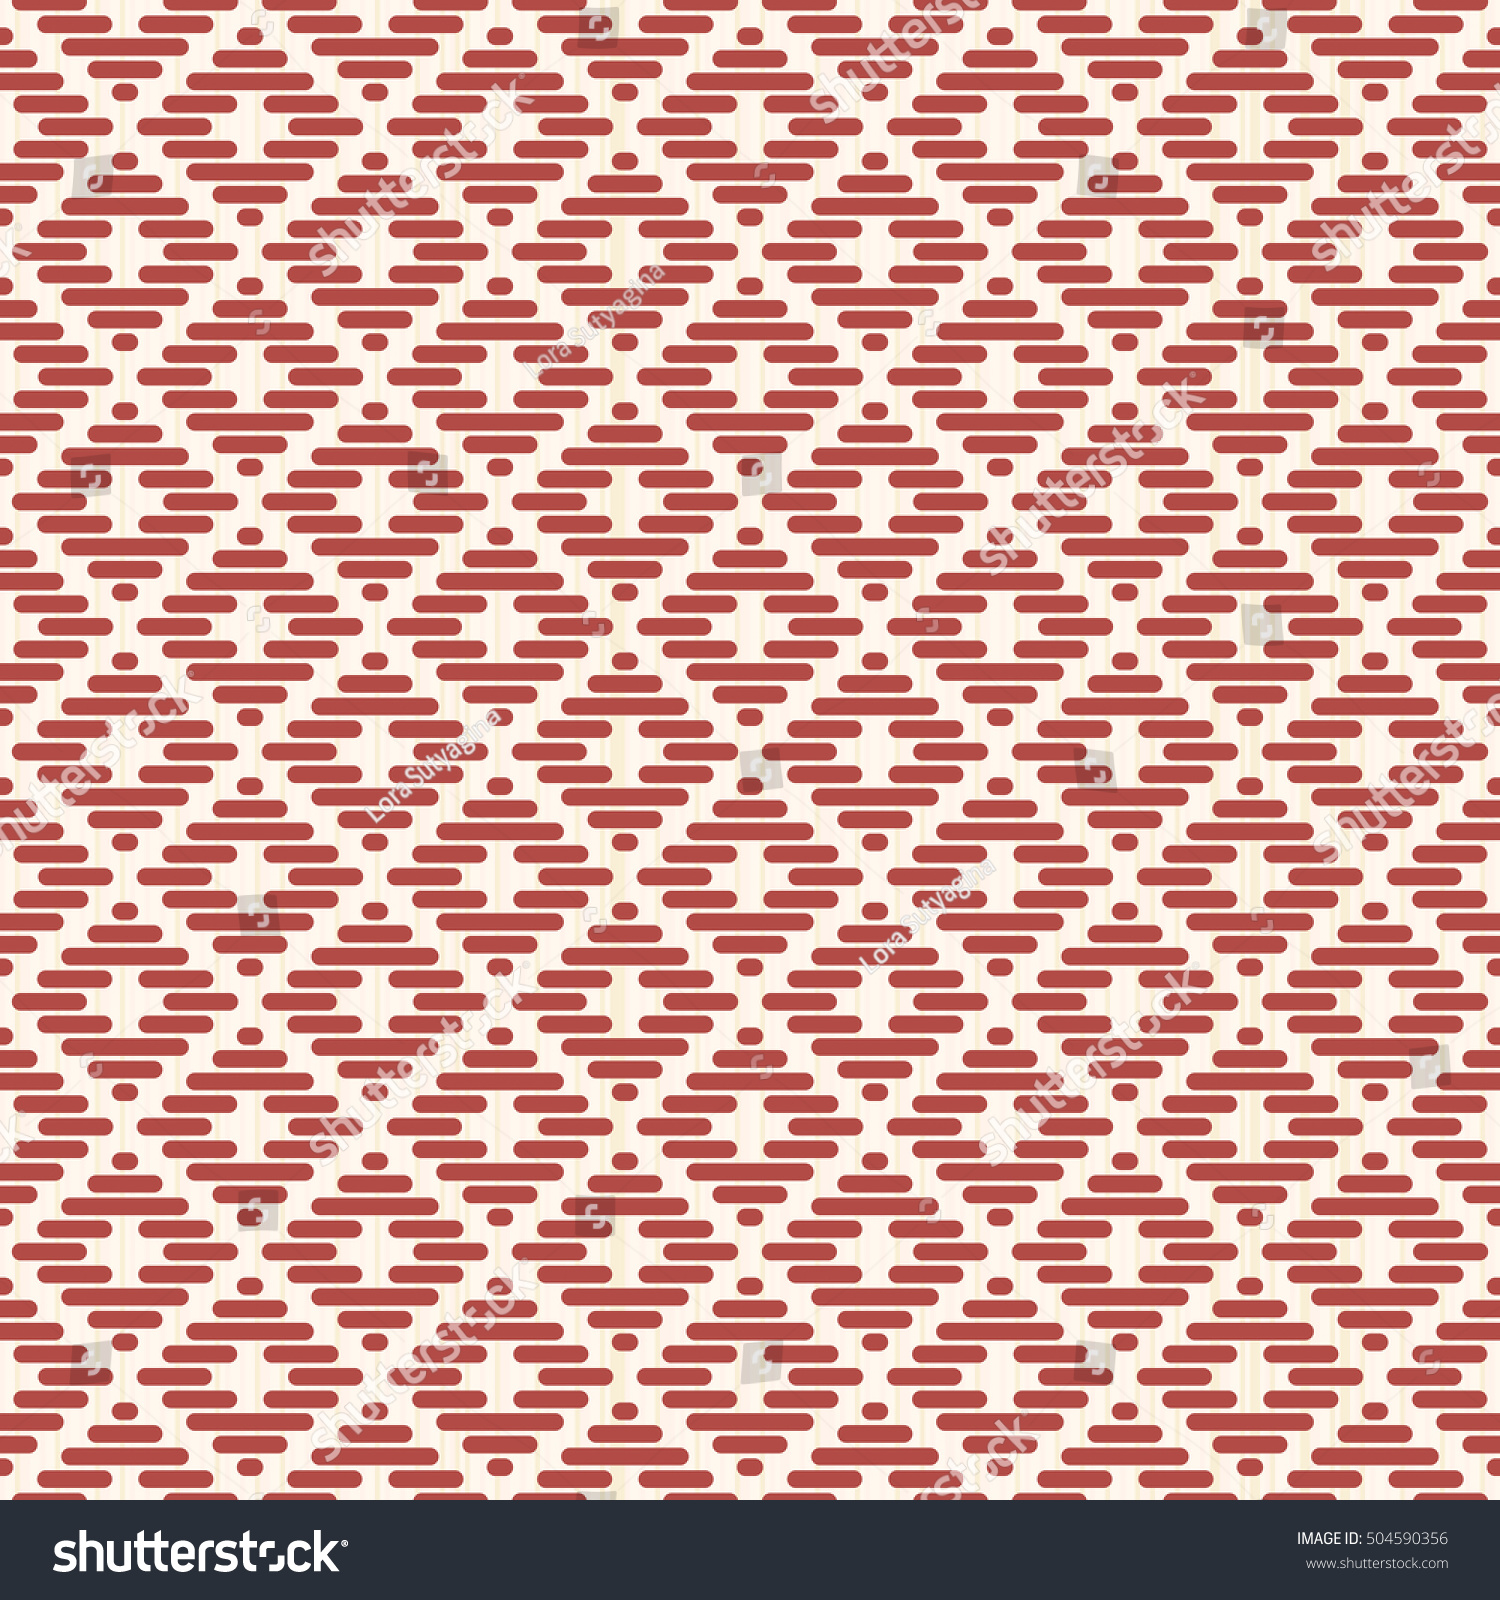 Seamless pattern japanese kogin embroidery traditional stock seamless pattern japanese kogin embroidery traditional mameko ornament abstract illustration simple geometric bankloansurffo Choice Image